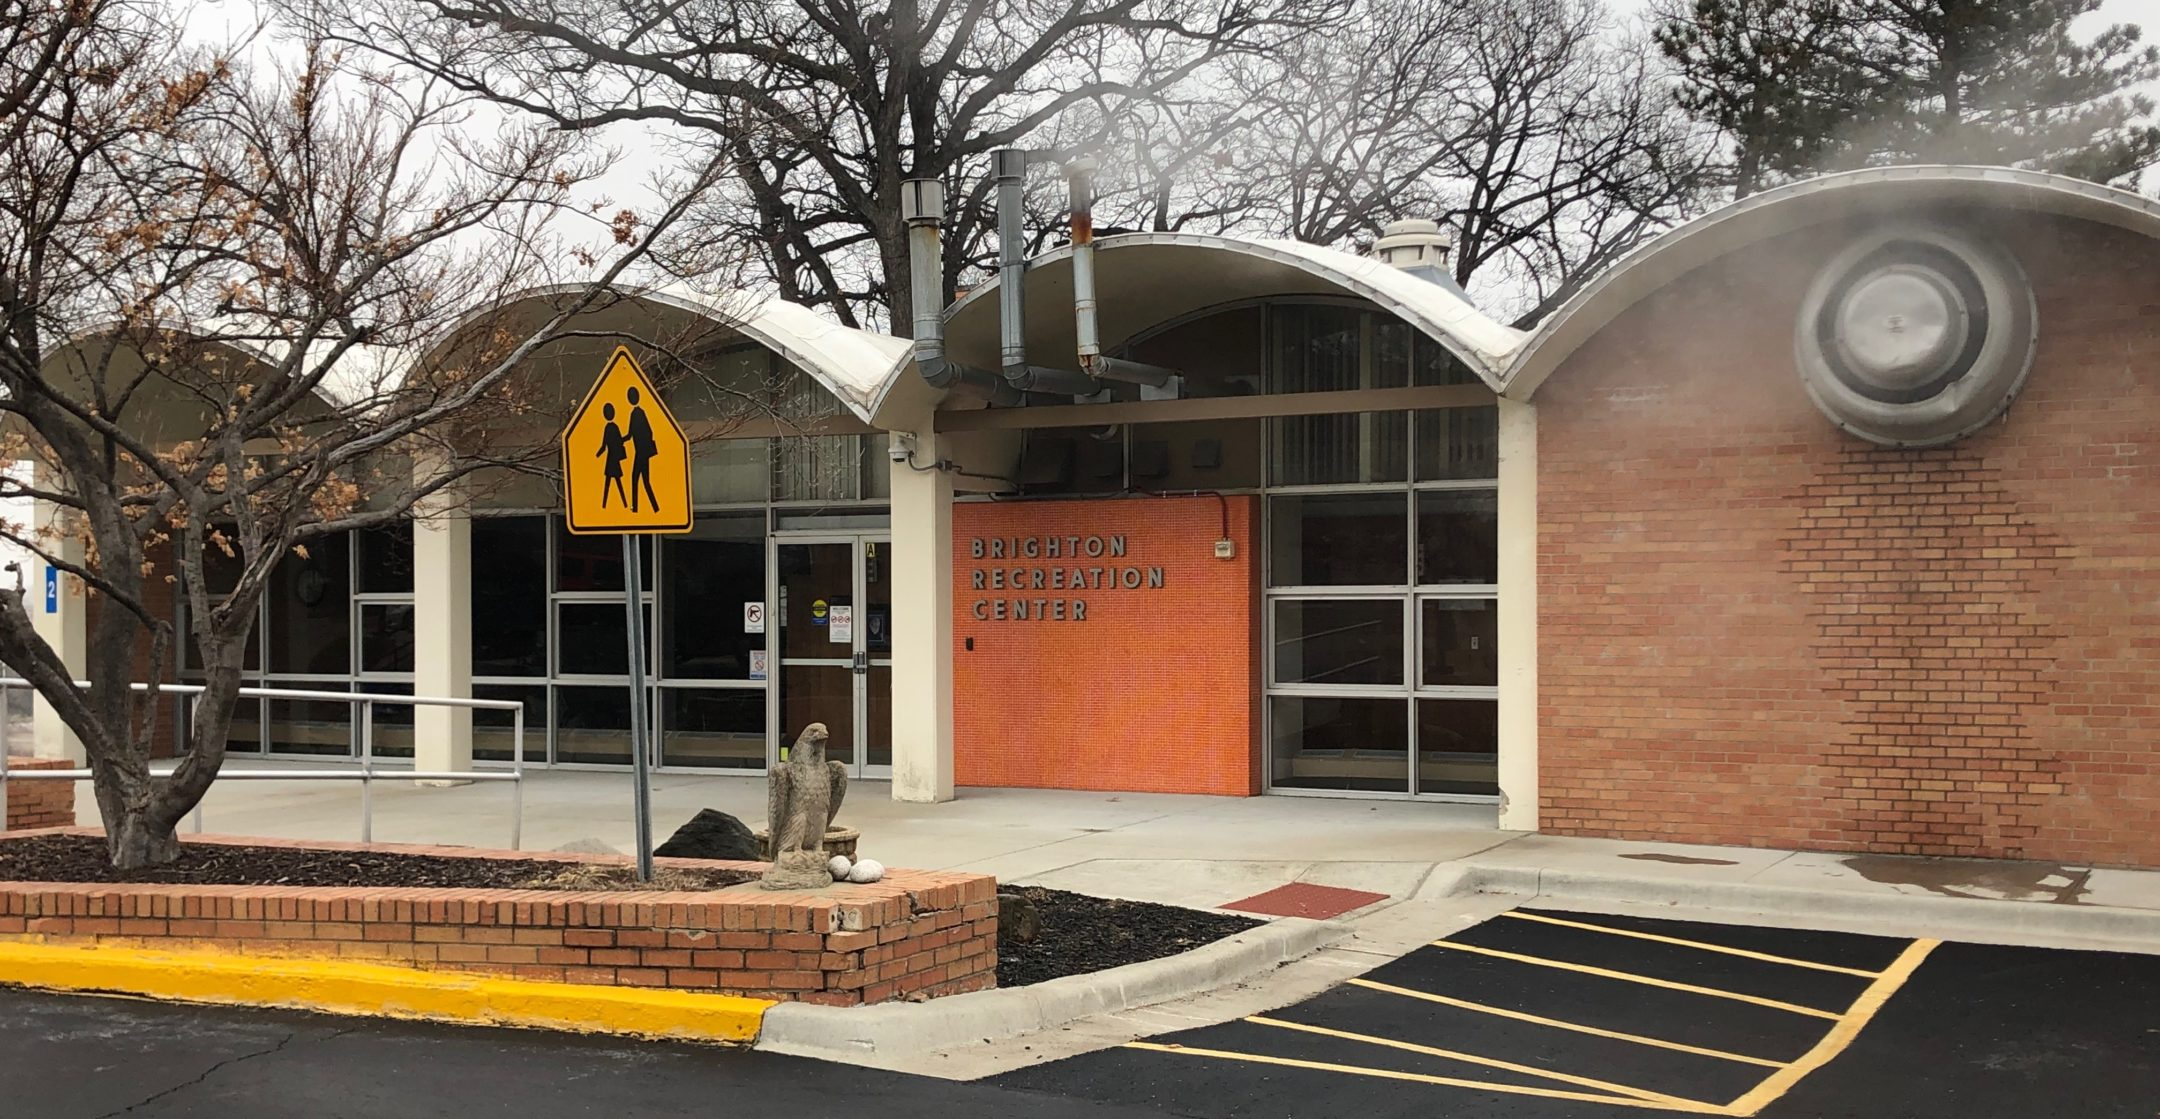 A building with 4 archway style awnings attached to white pillars. Most of the font wall is made with top to bottom windows. Under one awning is red brick wall with a heater vent creating fog into the air. An orange sign to the right of the entrance doors saying Brighten Recreation Center.